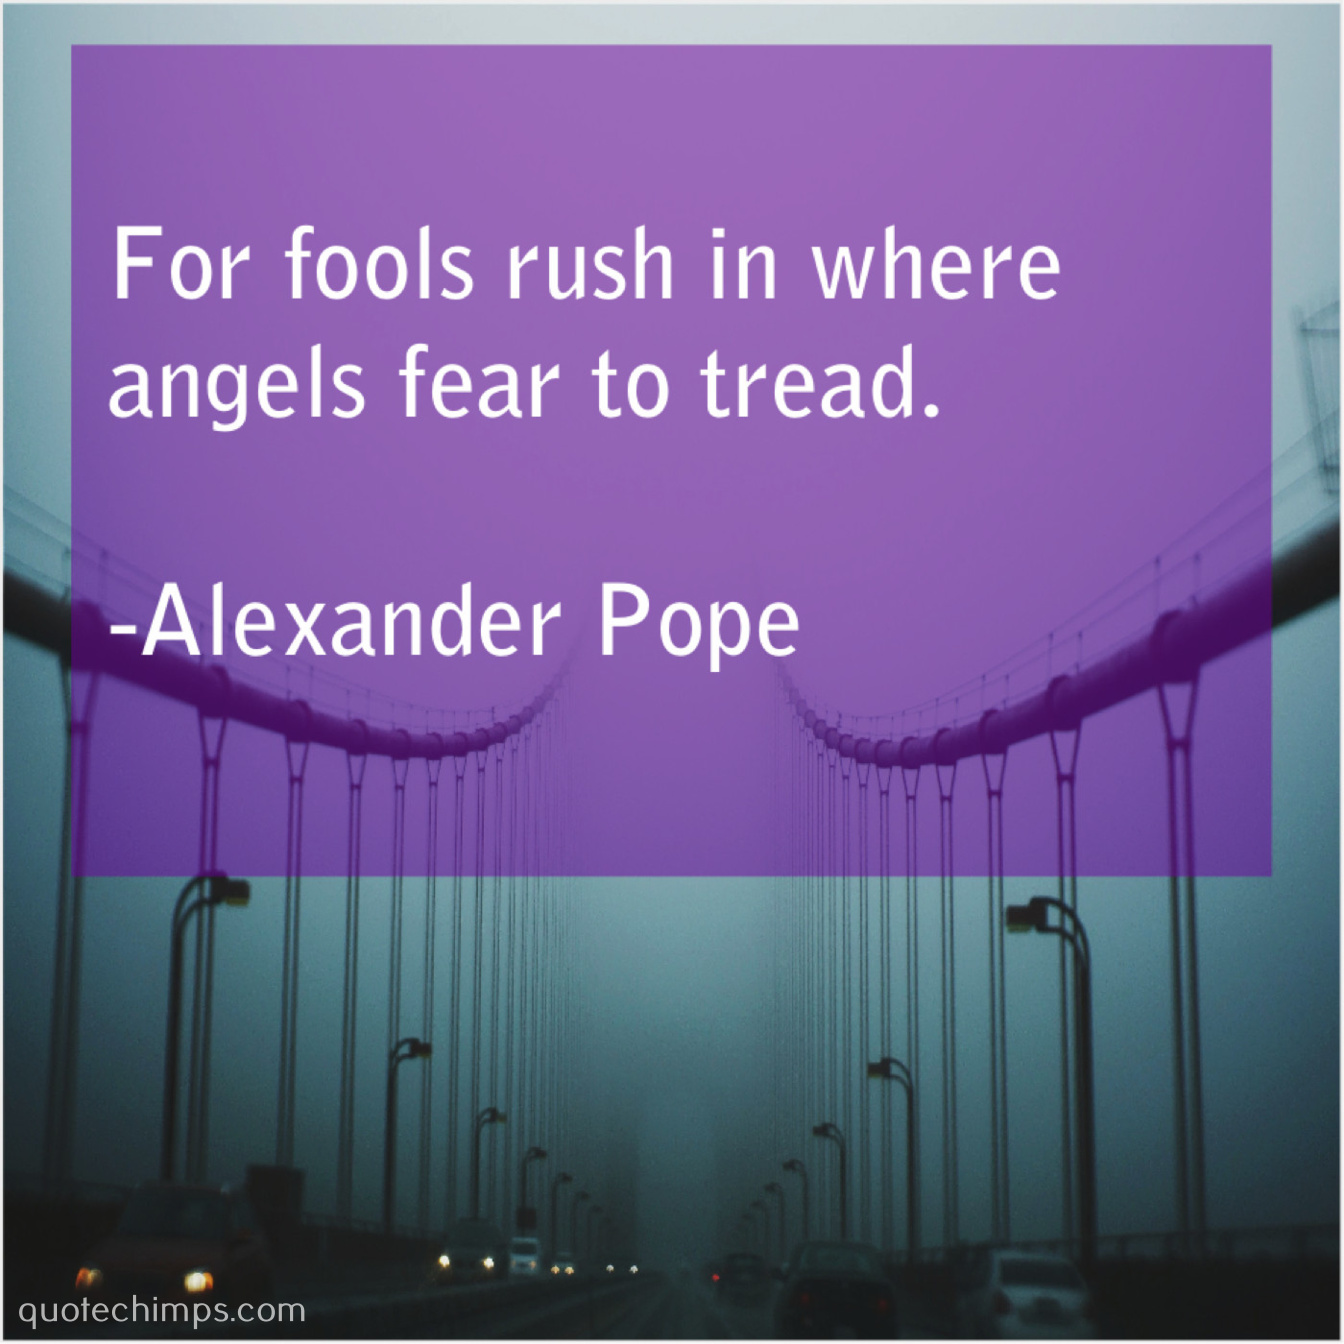 Alexander Pope For Fools Rush In Where